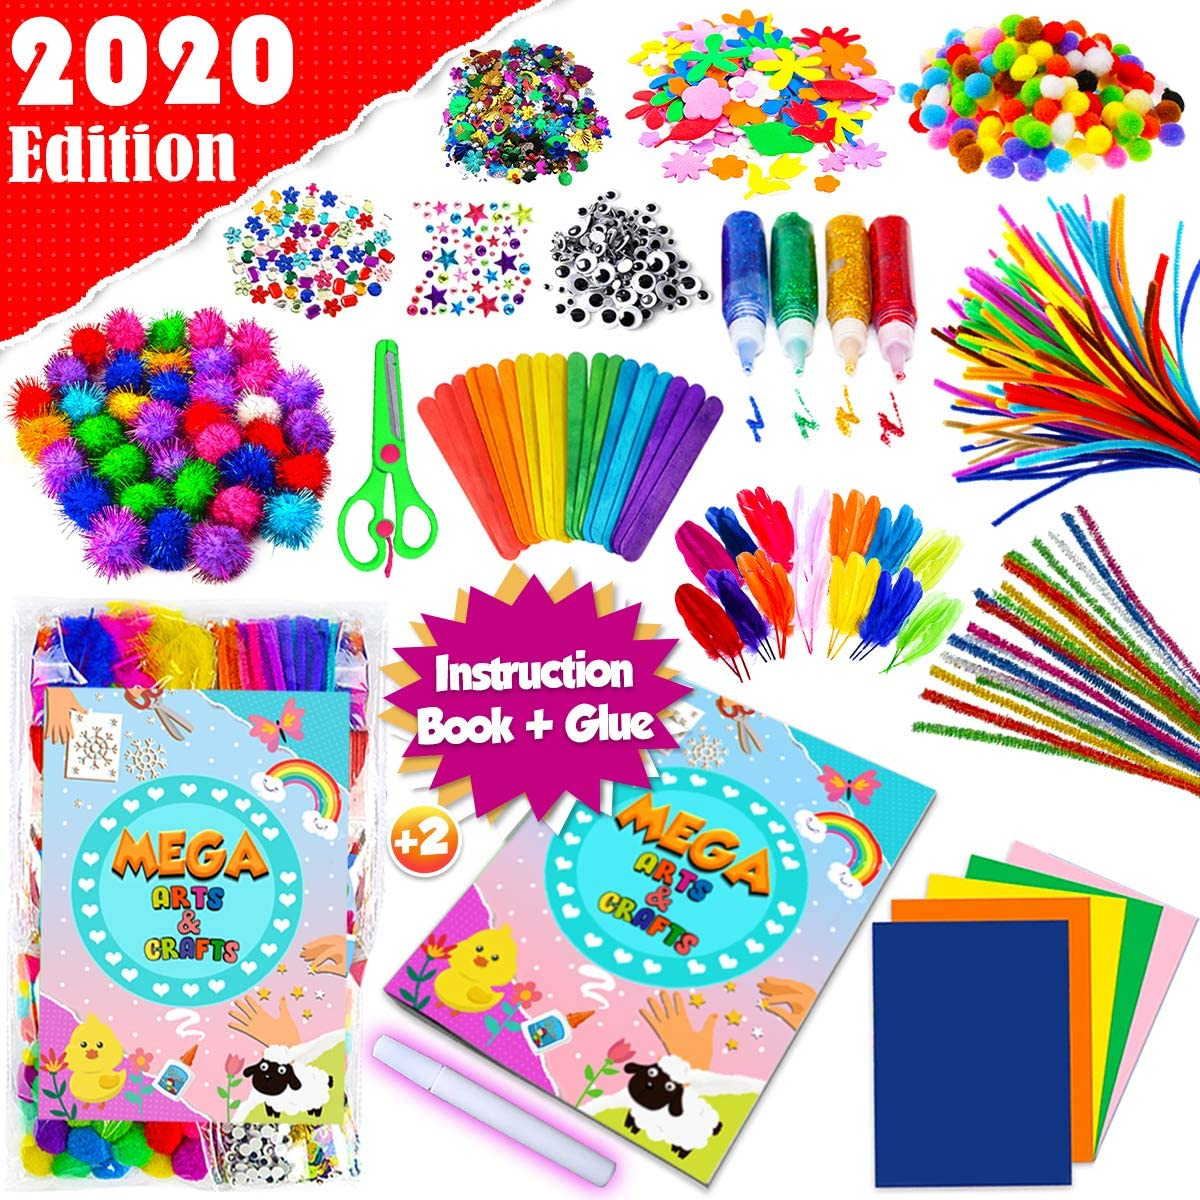 GoodyKing Assorted Arts and Crafts Supplies for Kids- D.I.Y. Collage School Crafting Materials Supply Set Pipe Cleaner- Craft Art Material Kit in Bulk for Kids Age 4 5 6 7 8 9 Years Old Boy Girls